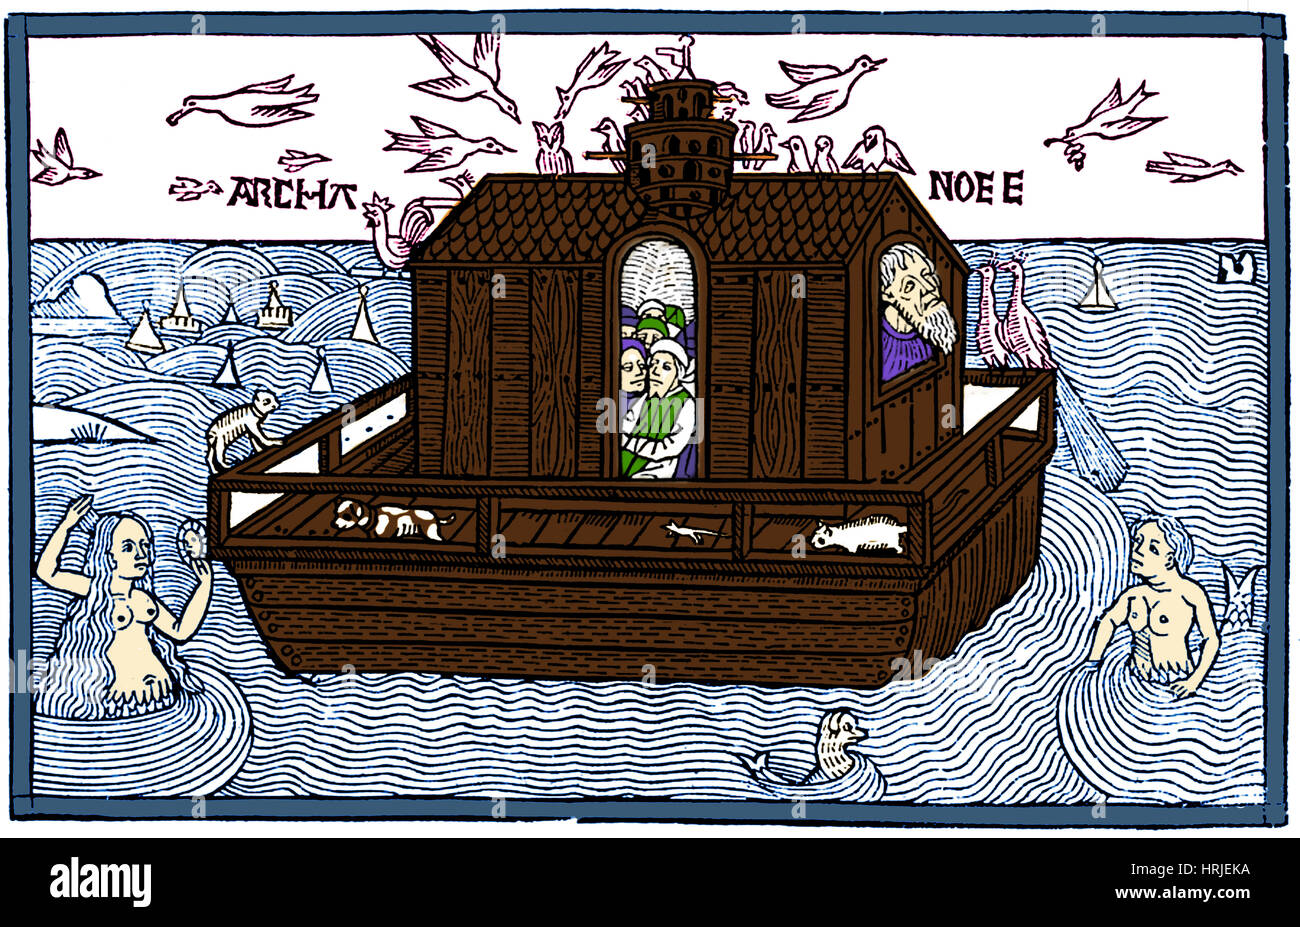 Noah's Ark with Merfolk, 1493 Stock Photo